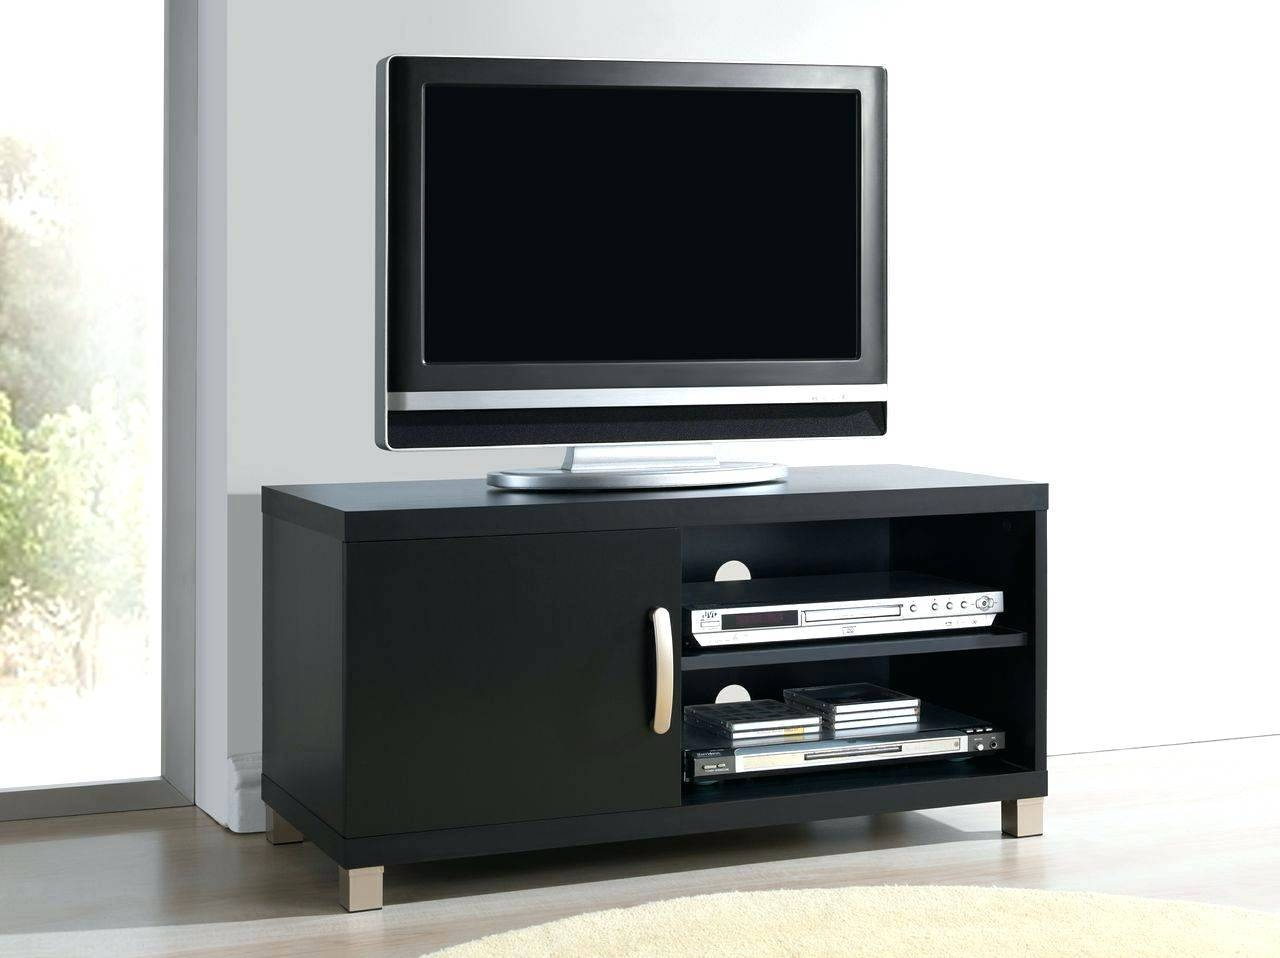 Tv Stand : Default Name Espresso Colored Corner Tv Stands 125 intended for Expresso Tv Stands (Image 11 of 15)